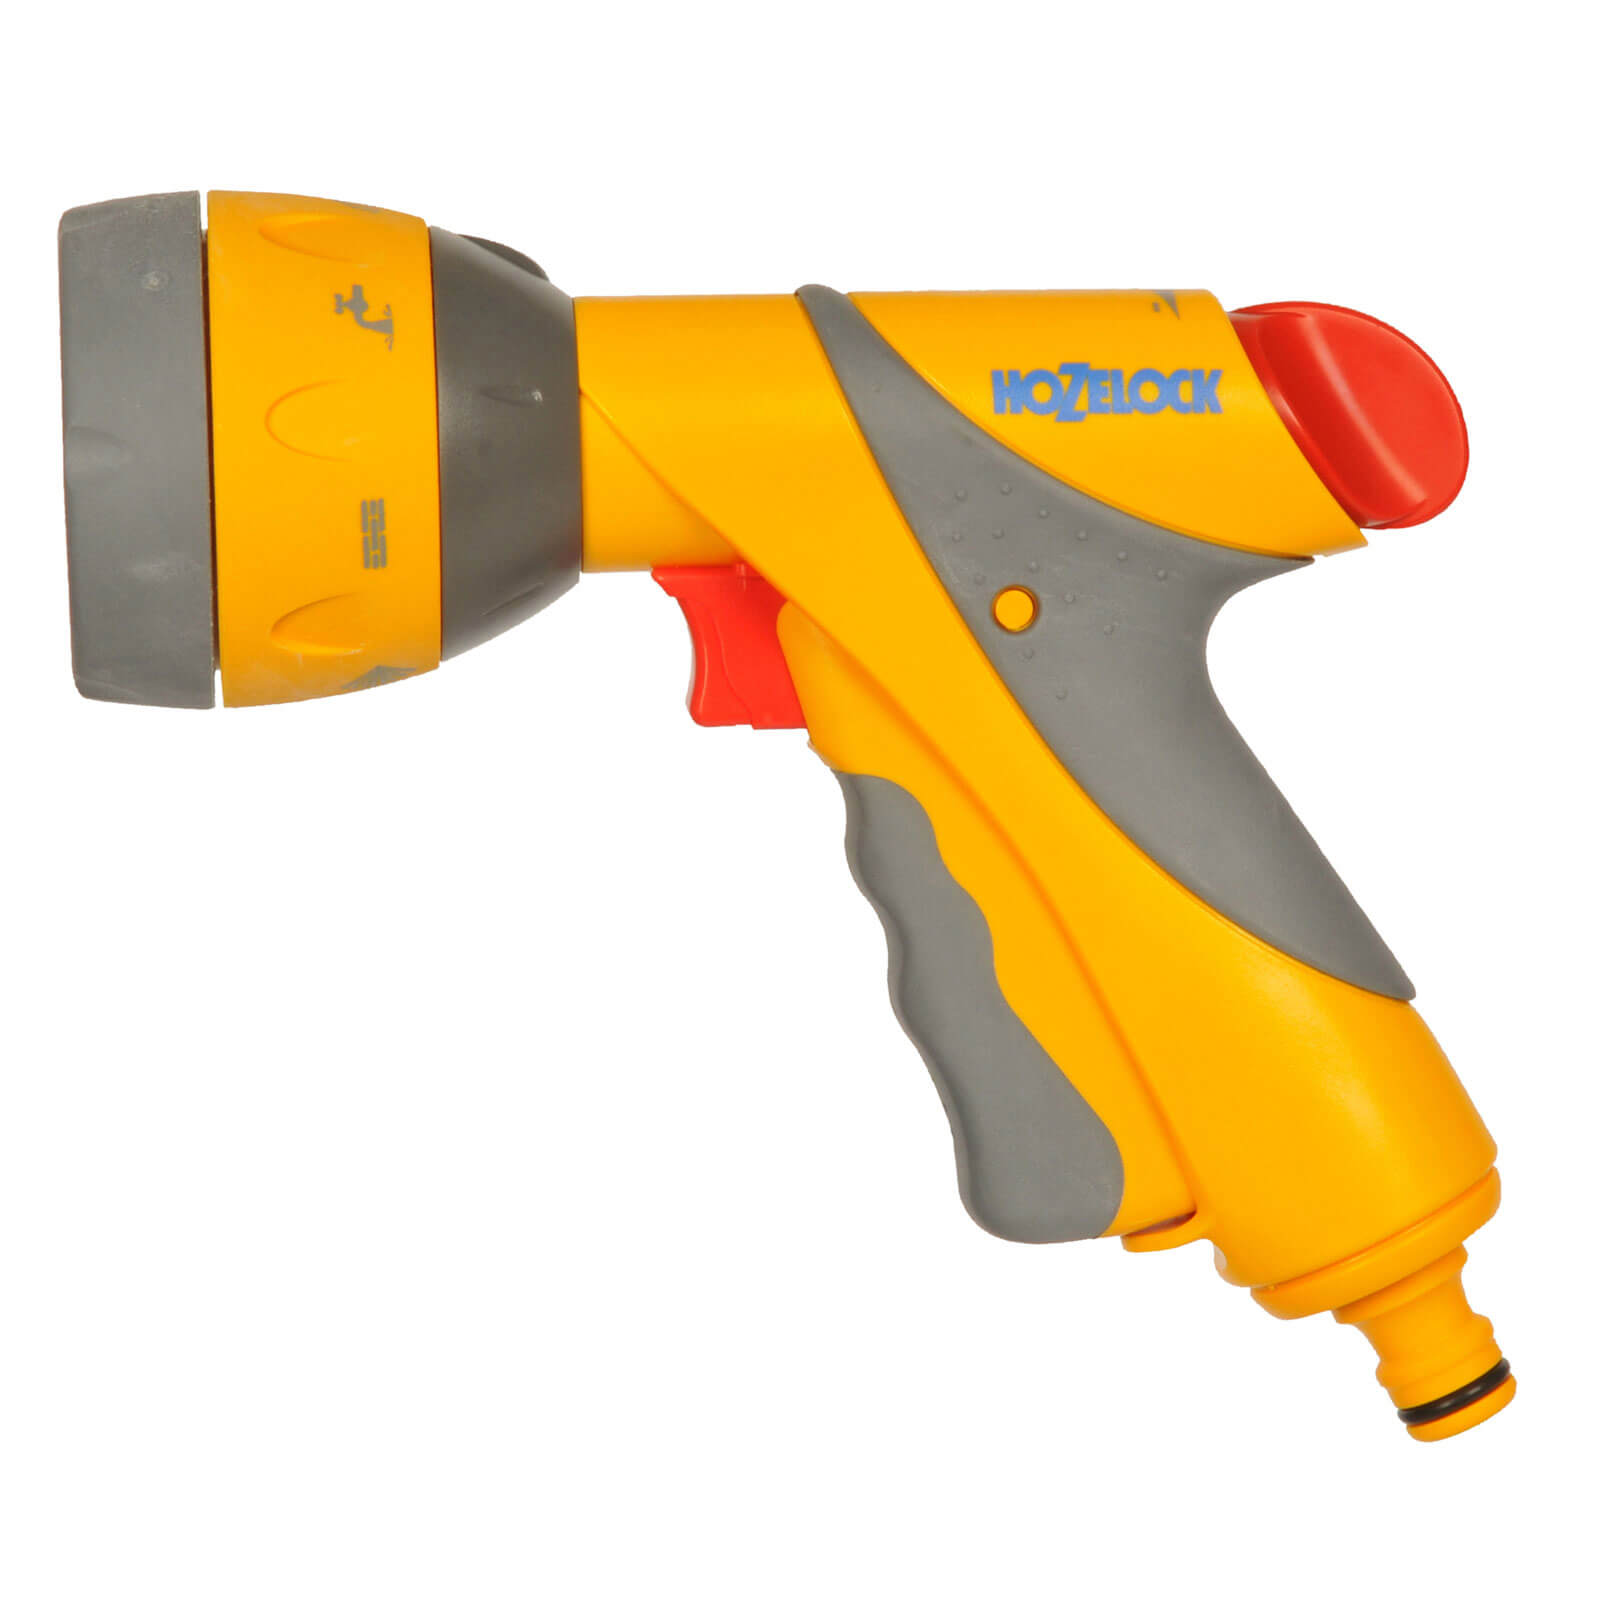 Hozelock Multi Water Spray Gun Plus with 6 Spray Patterns for Hose Pipes